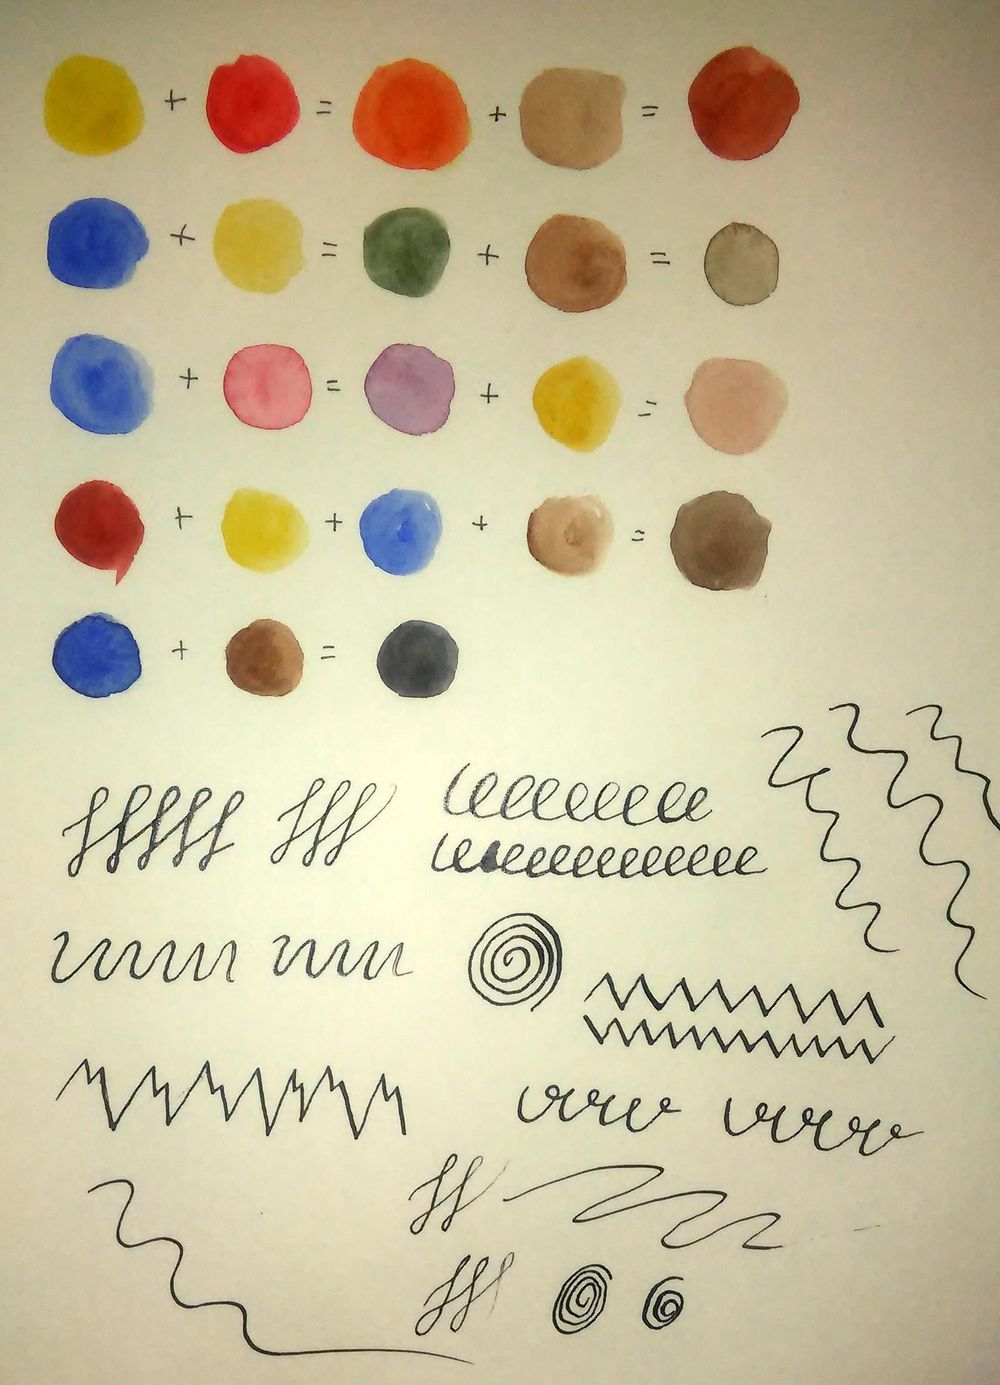 mixing watercolors and ink lines - image 1 - student project